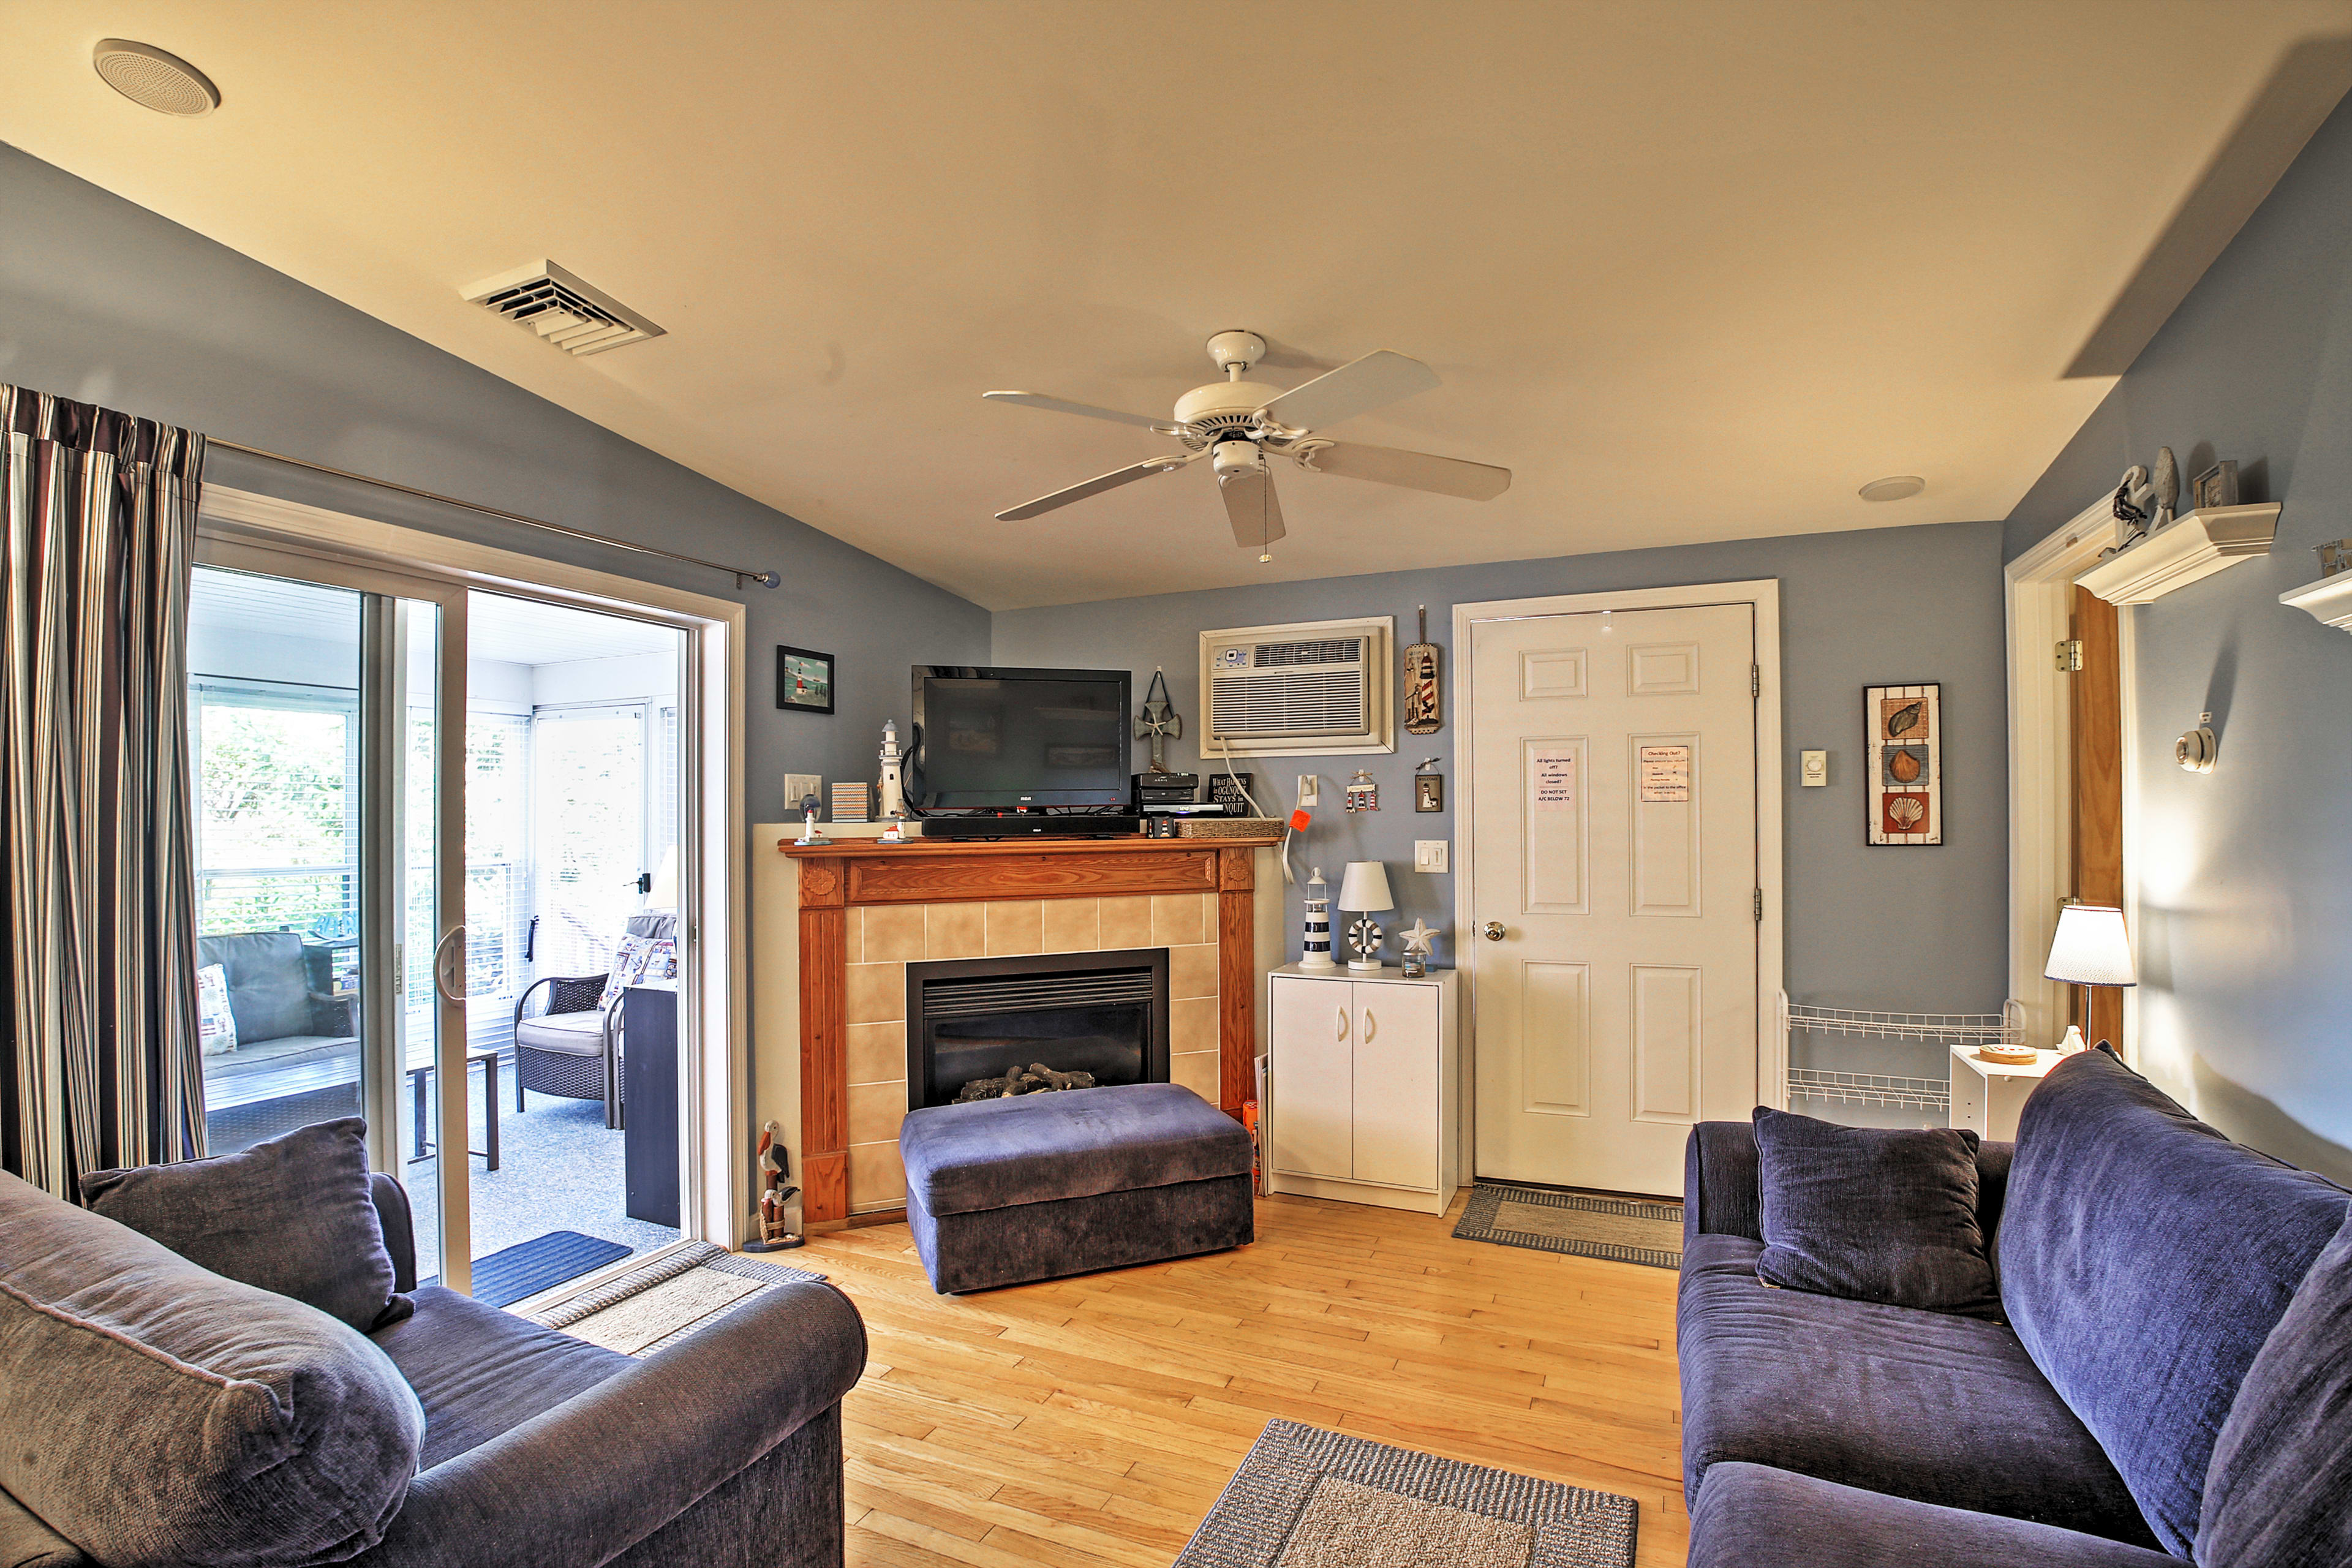 You'll feel right at home in this comfortable abode.